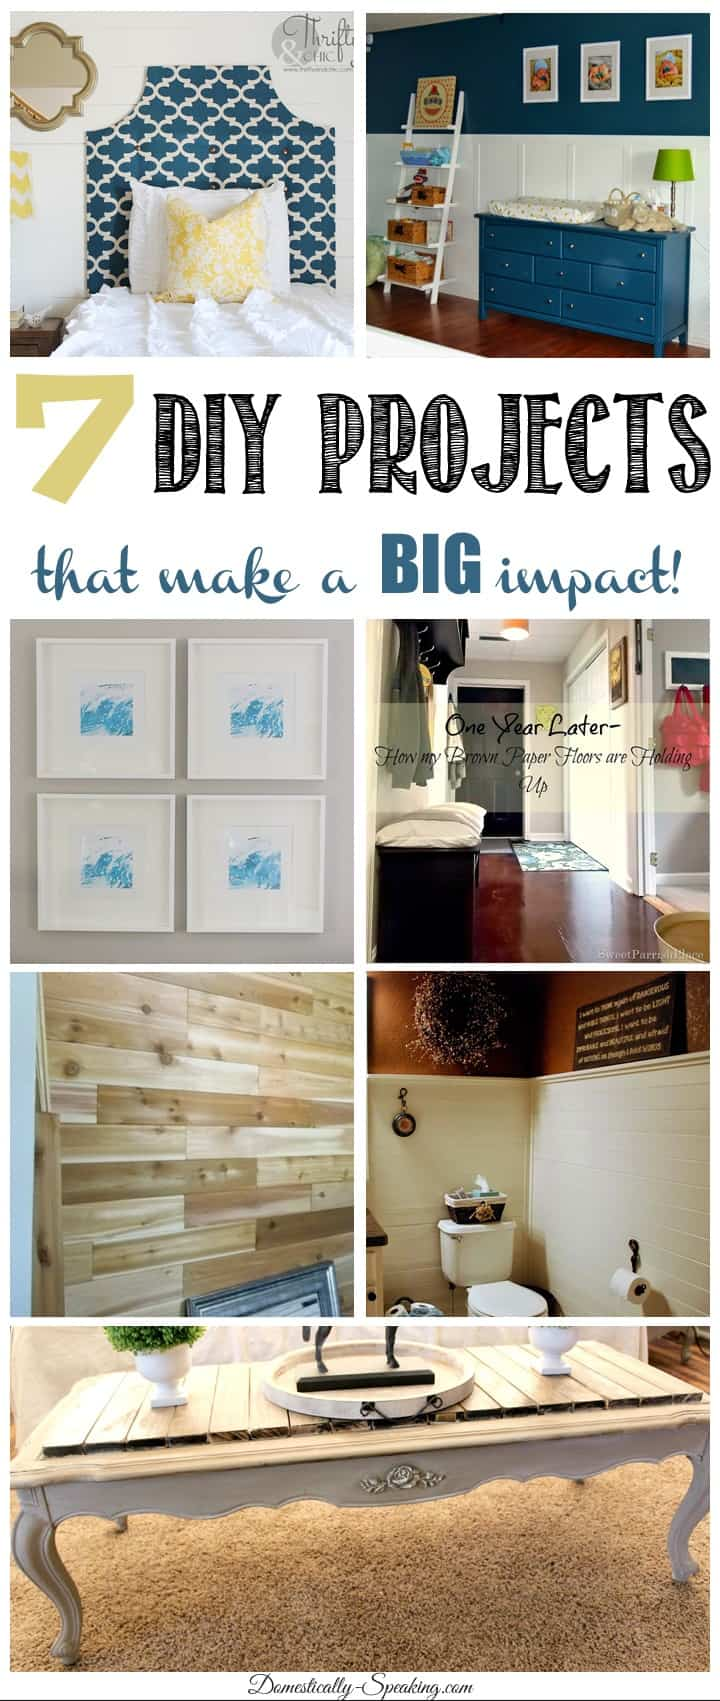 7 DIY Projects that make a BIG Impact